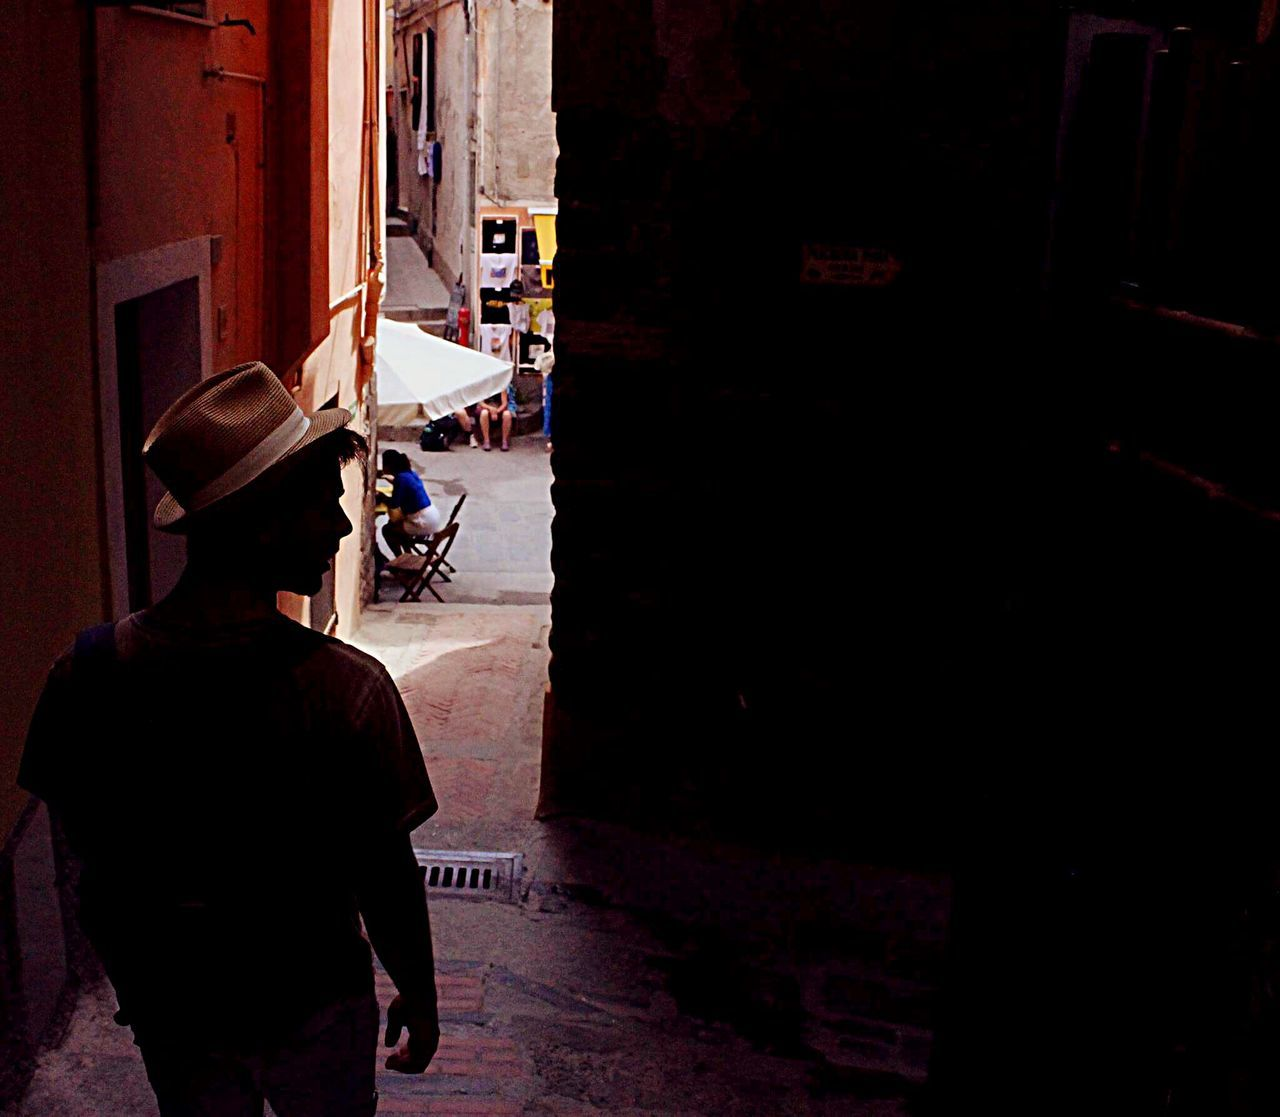 Turning the five lands Rear View One Person Real People City People Adult Adults Only Men Day Outdoors One Man Only Architecture Only Men Musical Instrument Gondola - Traditional Boat EyeEm Best Shots Tranquility Liguria Cinque Terre